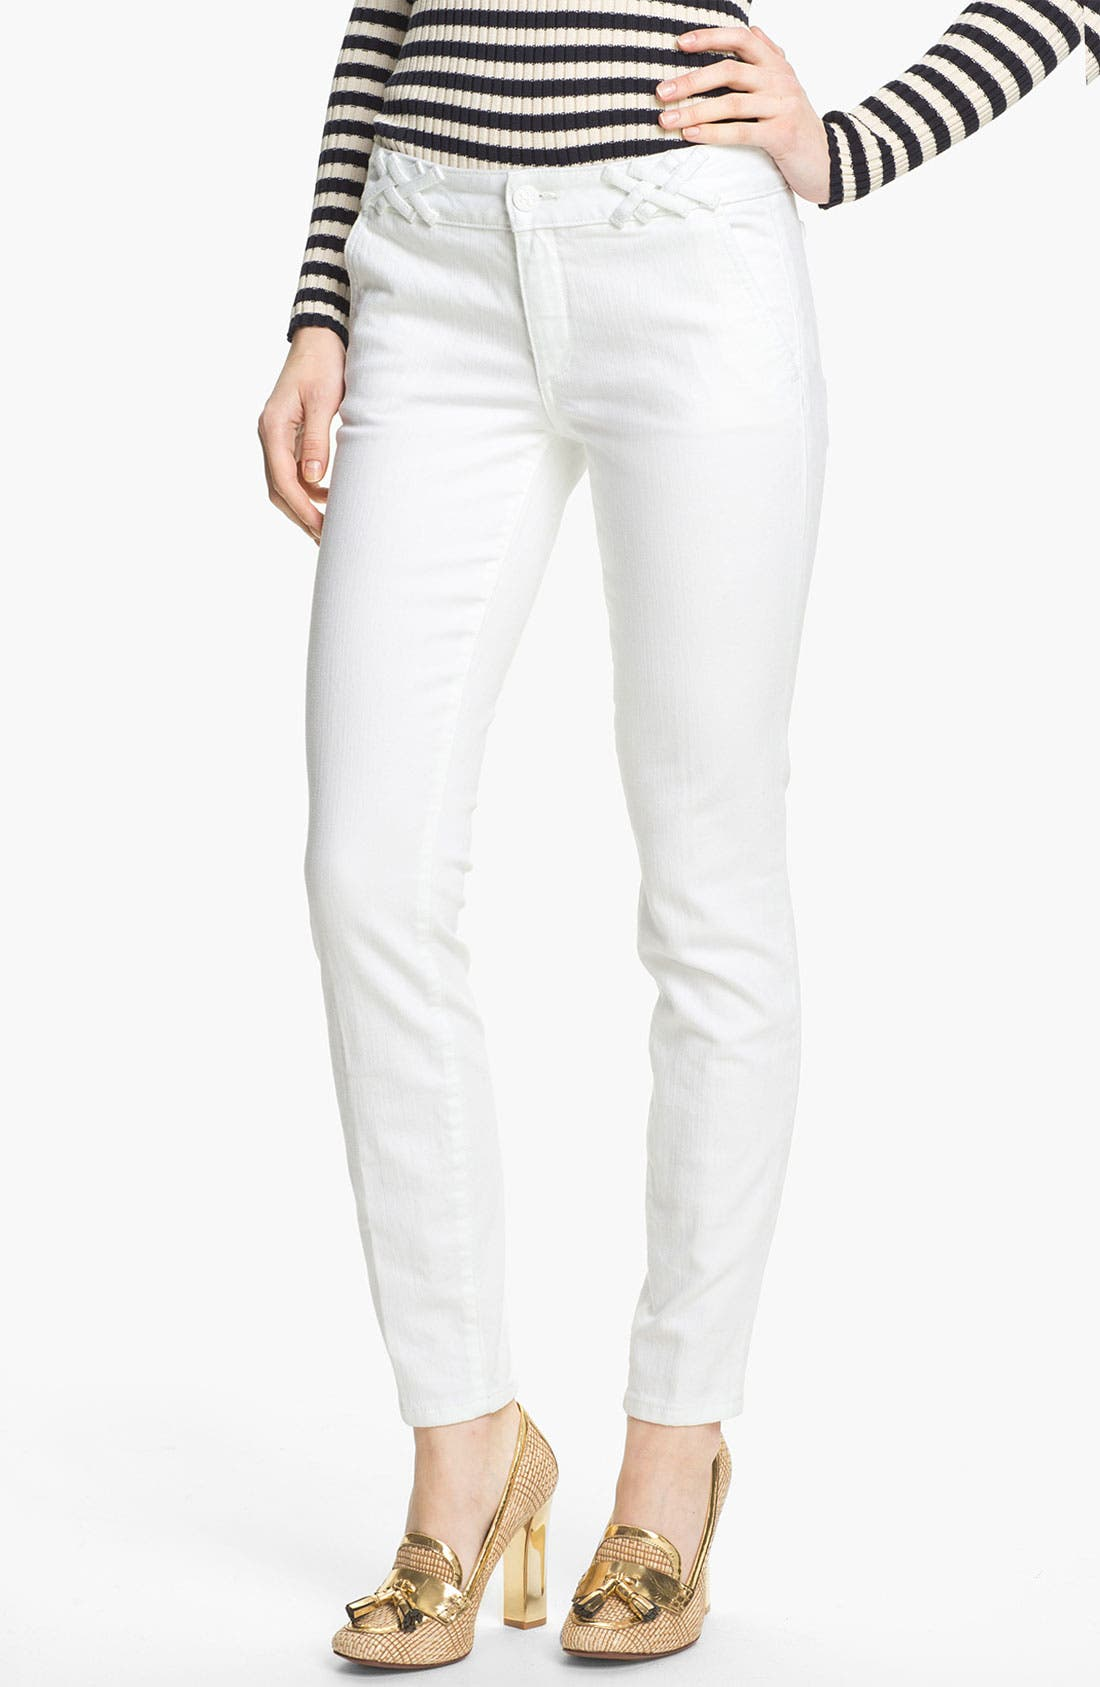 Main Image - Tory Burch 'Izzy' Ankle Skinny Jeans (Super Stonewashed White)